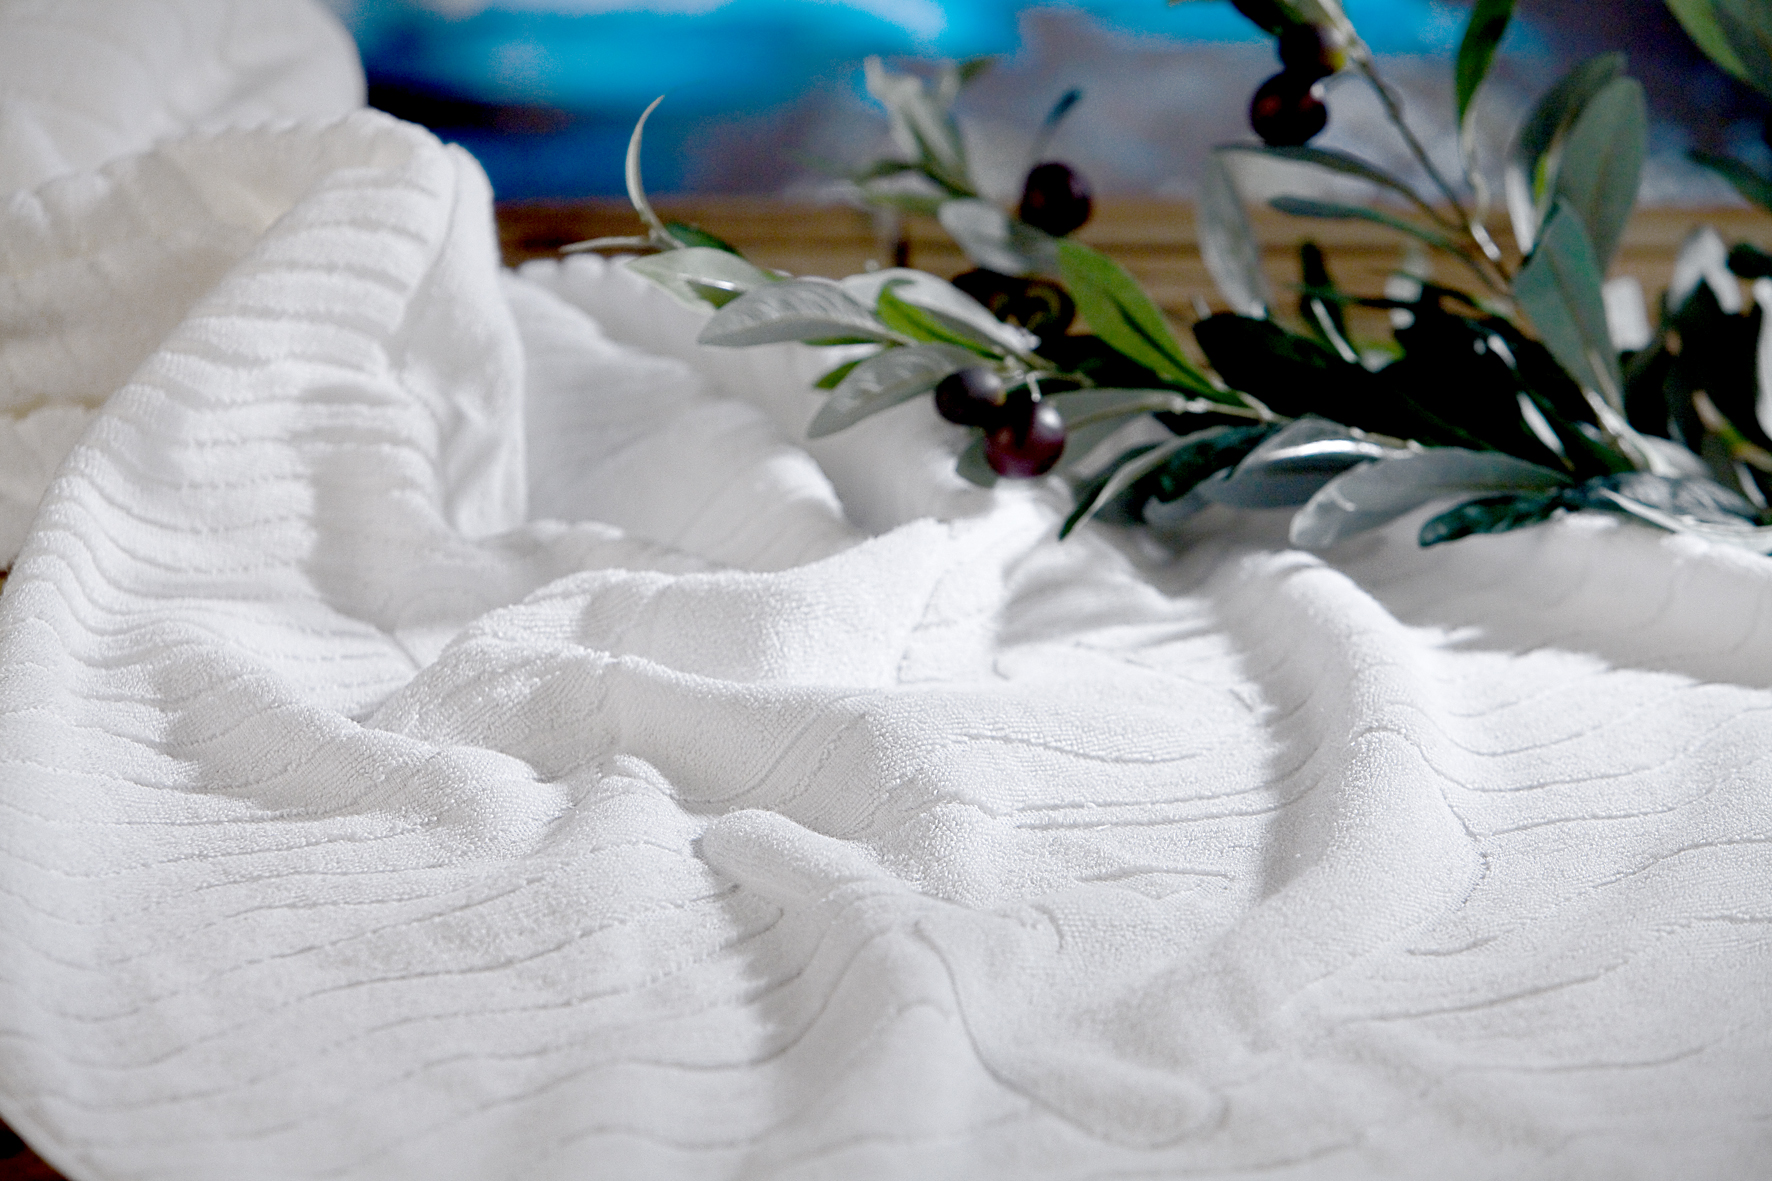 Handtuch Bio organic GOTS Global Organic Textile Standard Relax Baumwolle cotton terry towel weaving mad in austria